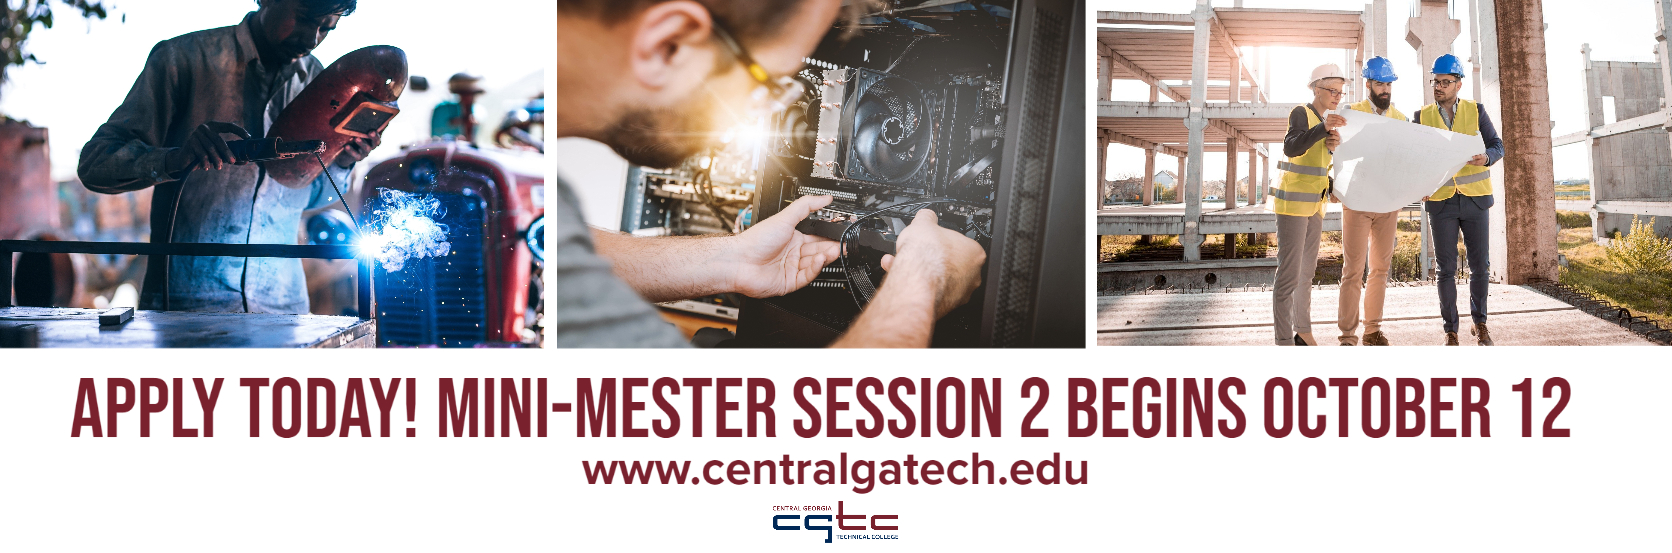 Apply Today. Mini-mester Session 2 Begins October 12.